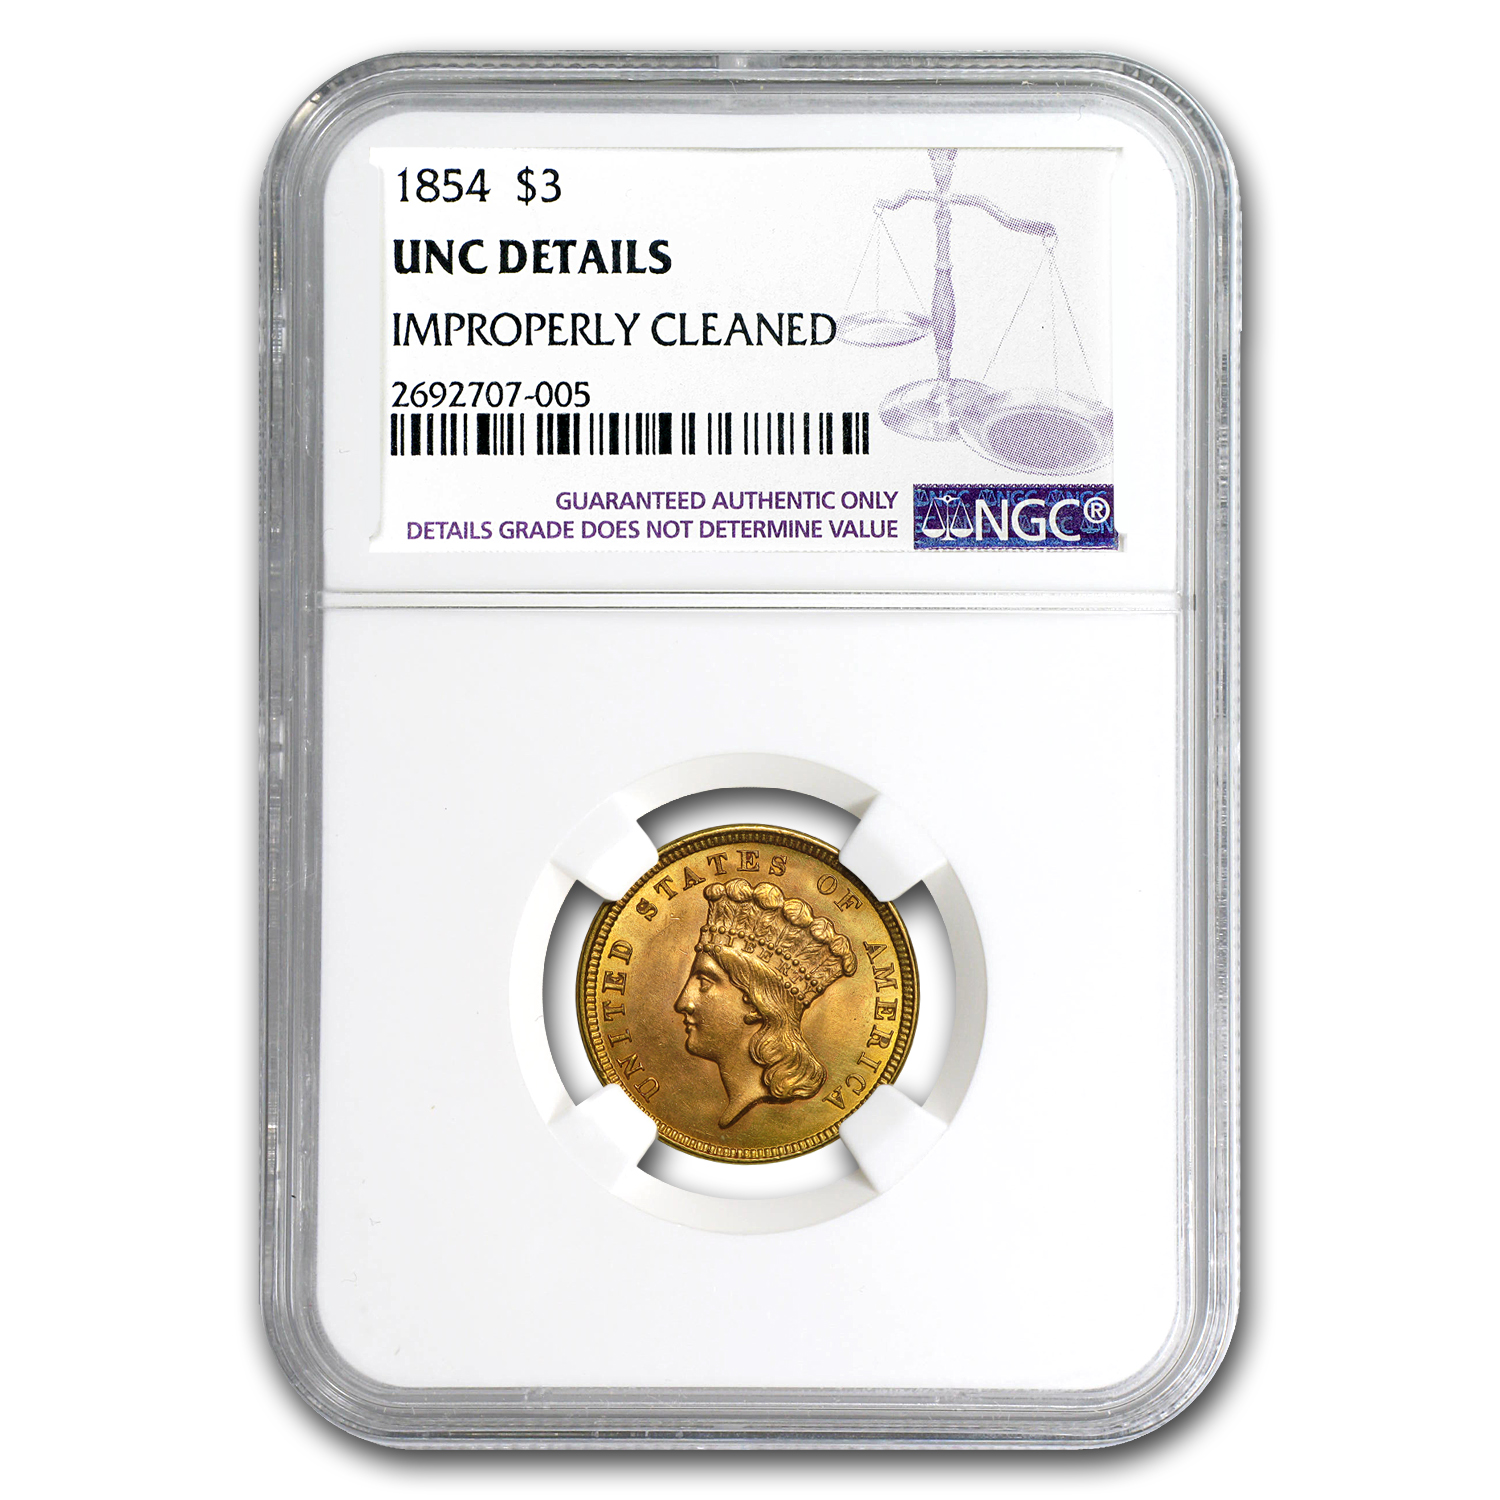 1854 $3 Gold Princess Unc Details NGC (Improperly Cleaned)